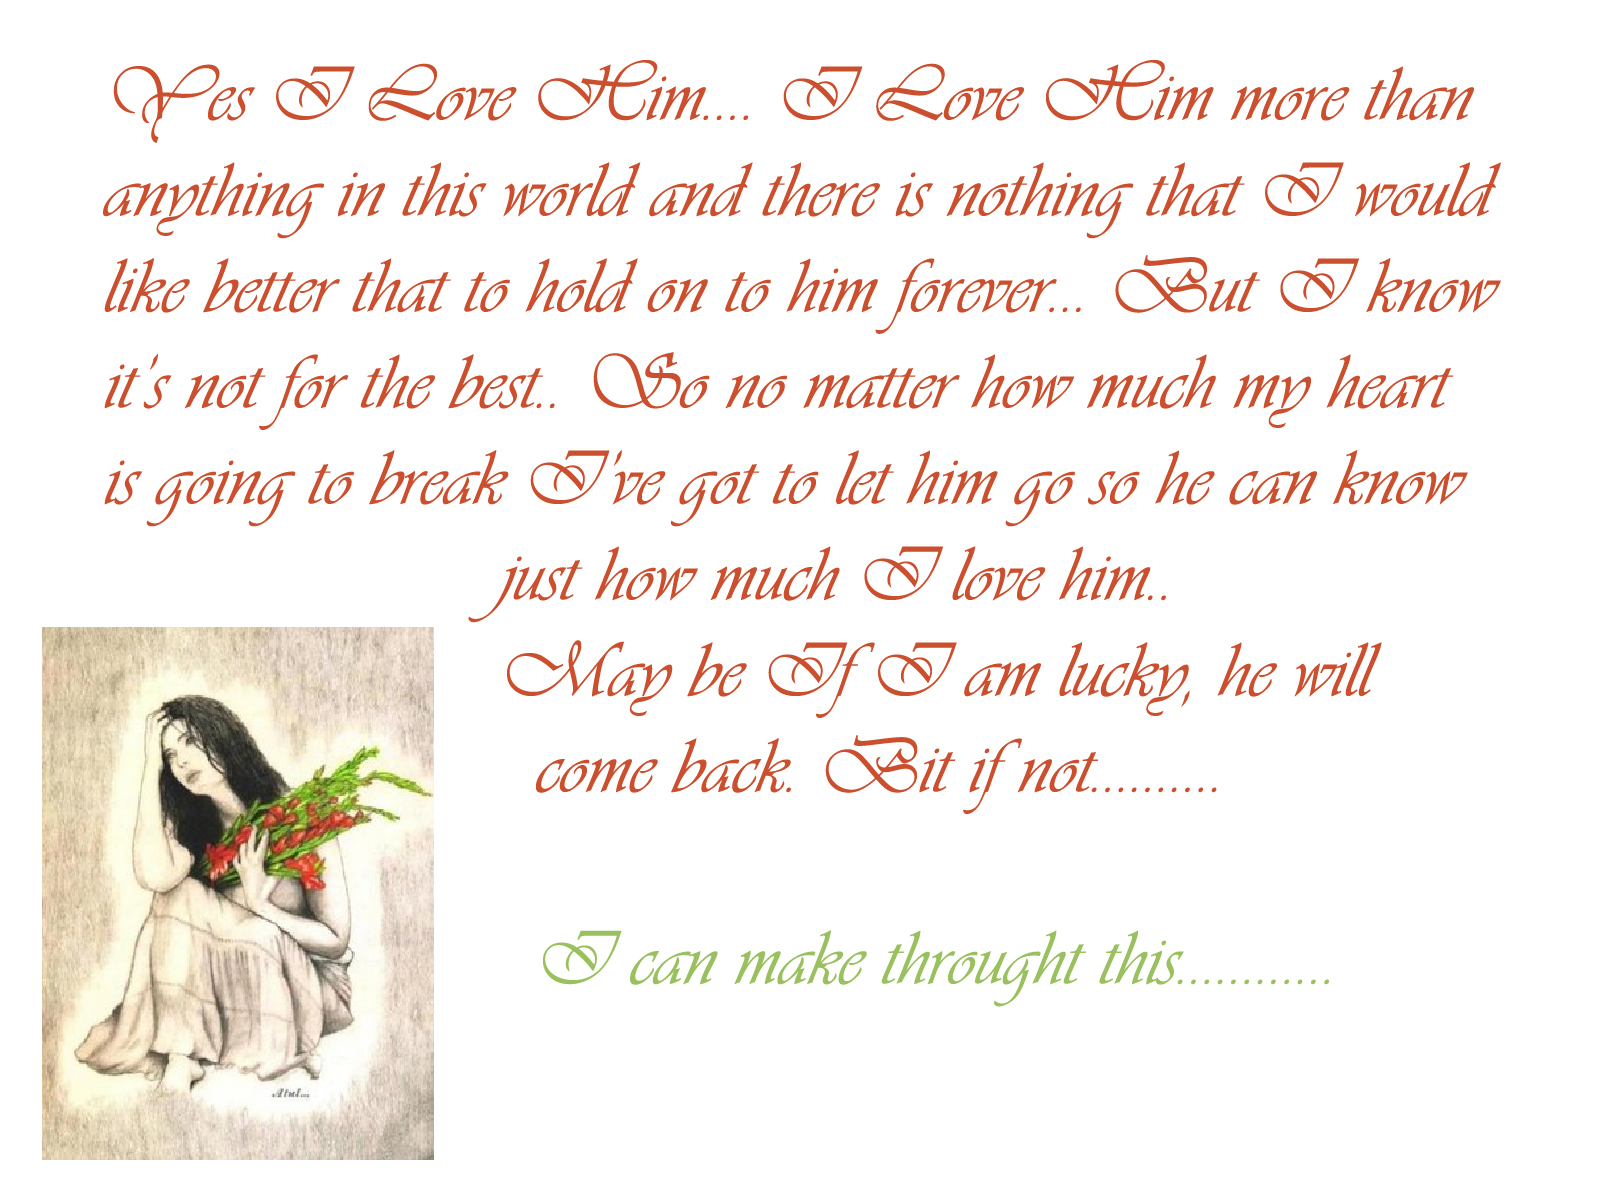 silverlovely fan love quotes and love poems love